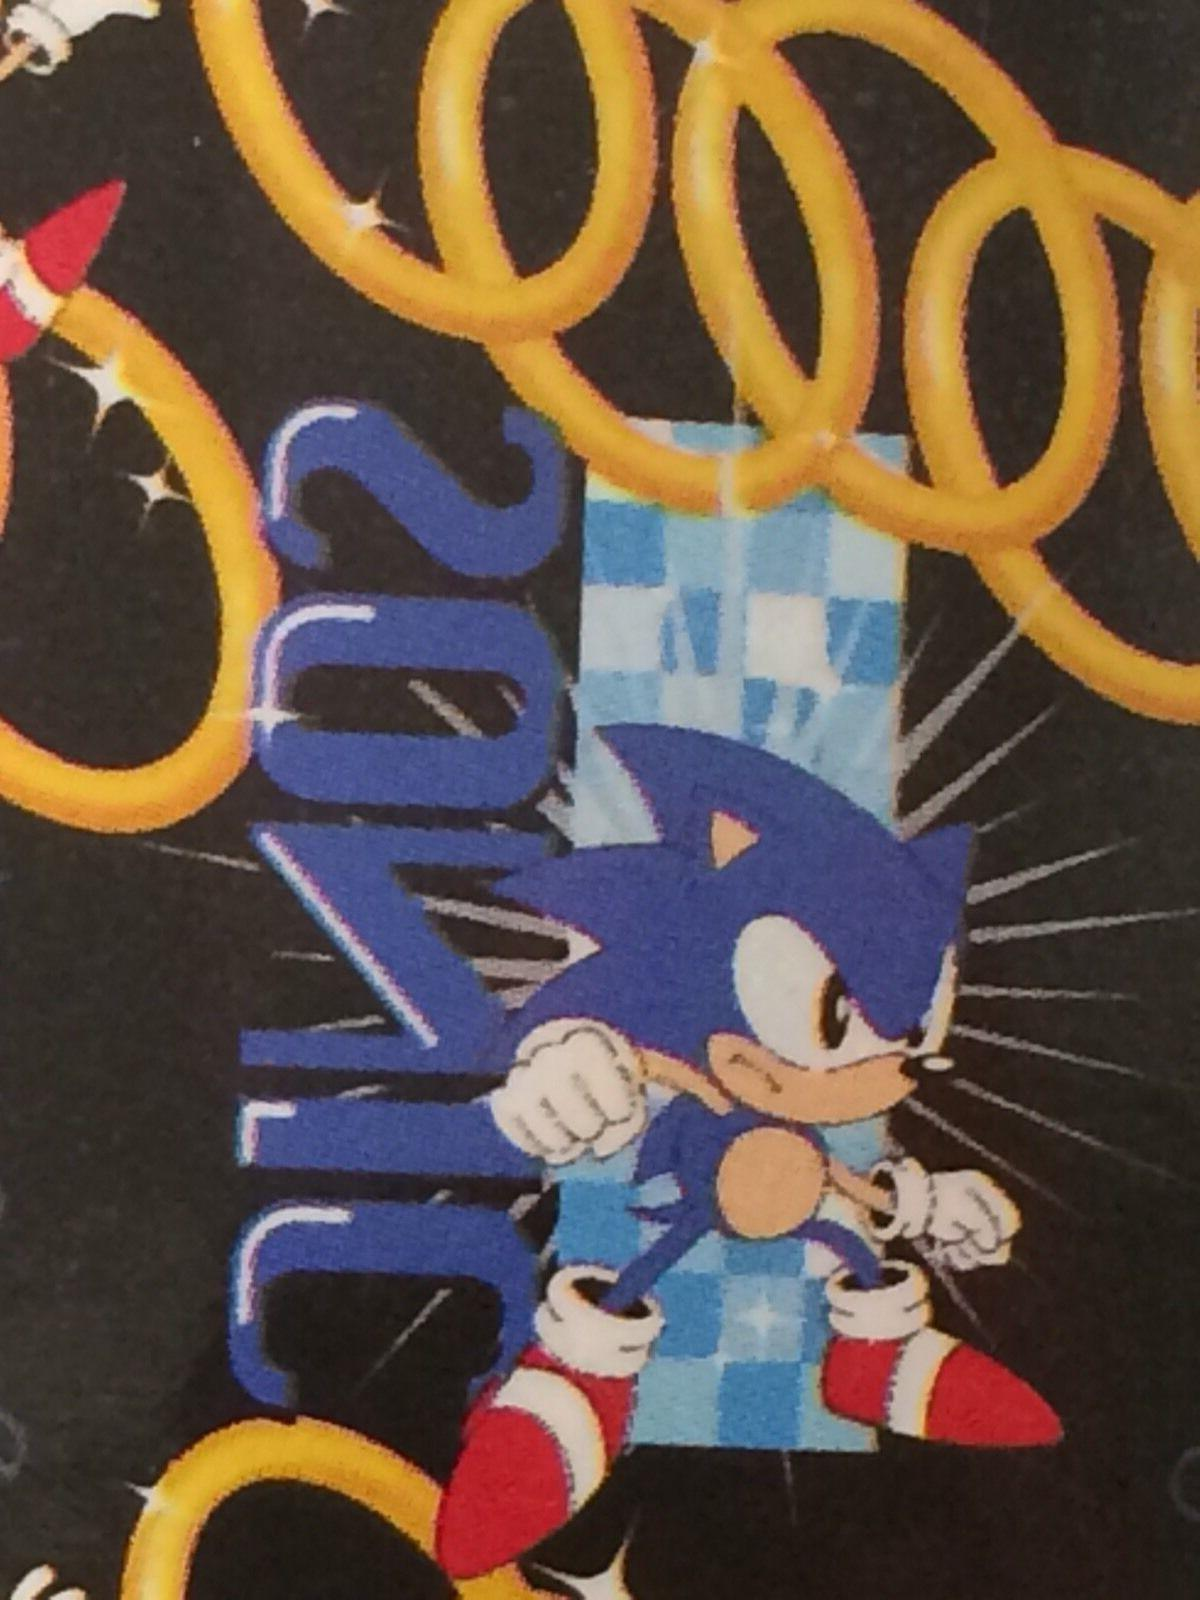 Sonic The Hedgehog Sega Video Game Black  Ring Repeater  Fle